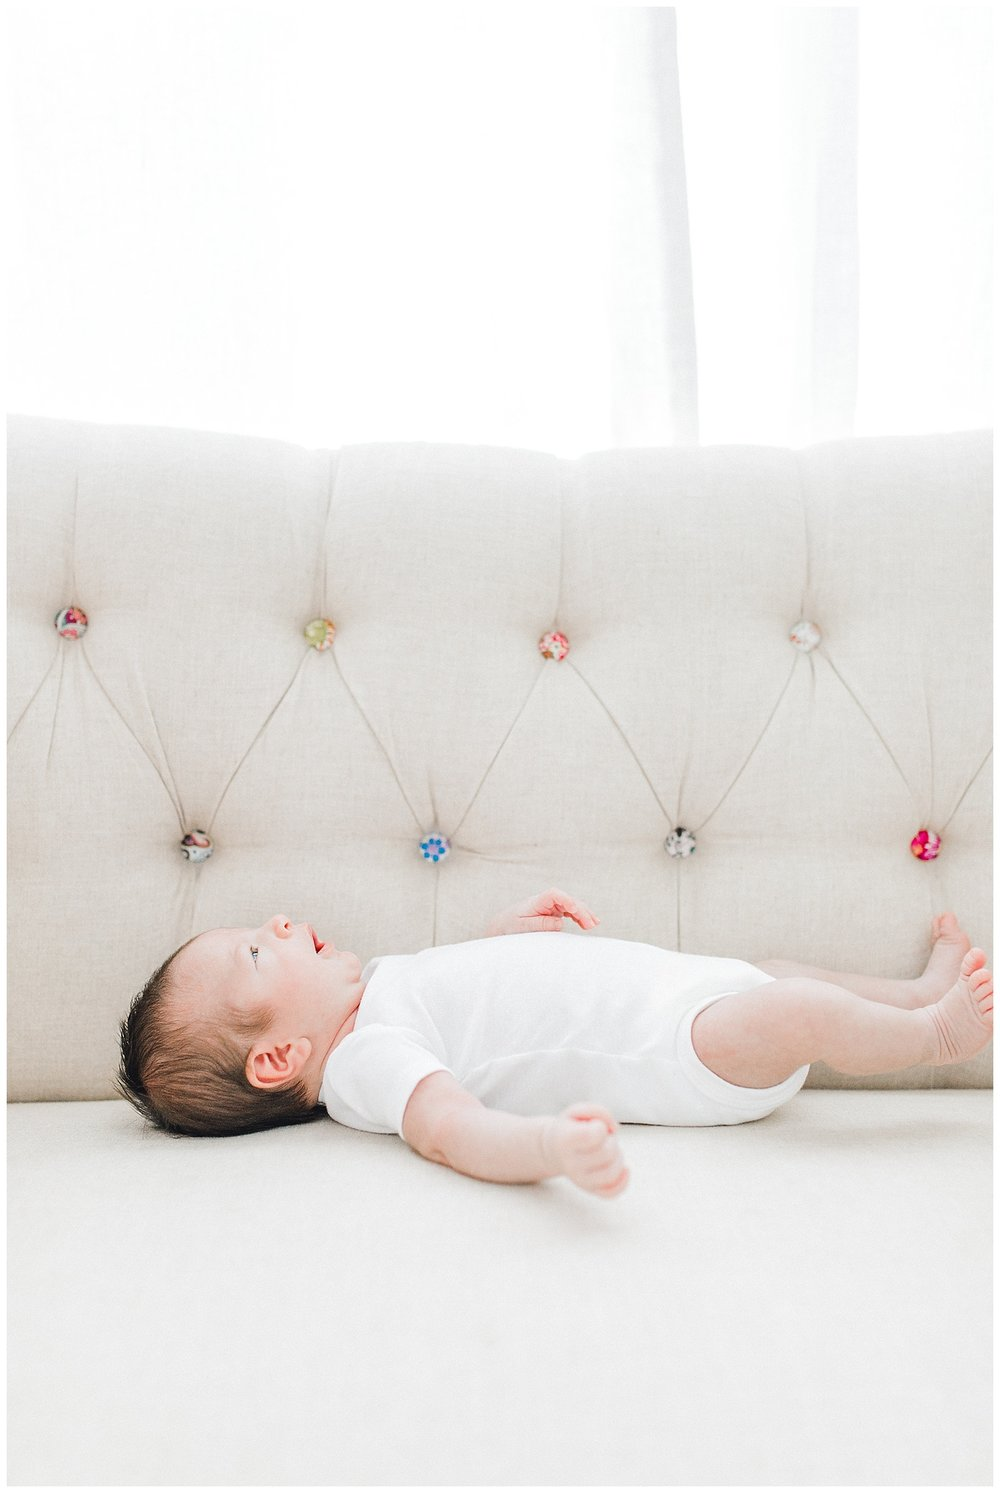 Newborn Lifestyle In-Studio Photo Session Light and Airy Kindred Presets Emma Rose Company Seattle Portland Wedding and Portrait Photographer13.jpg